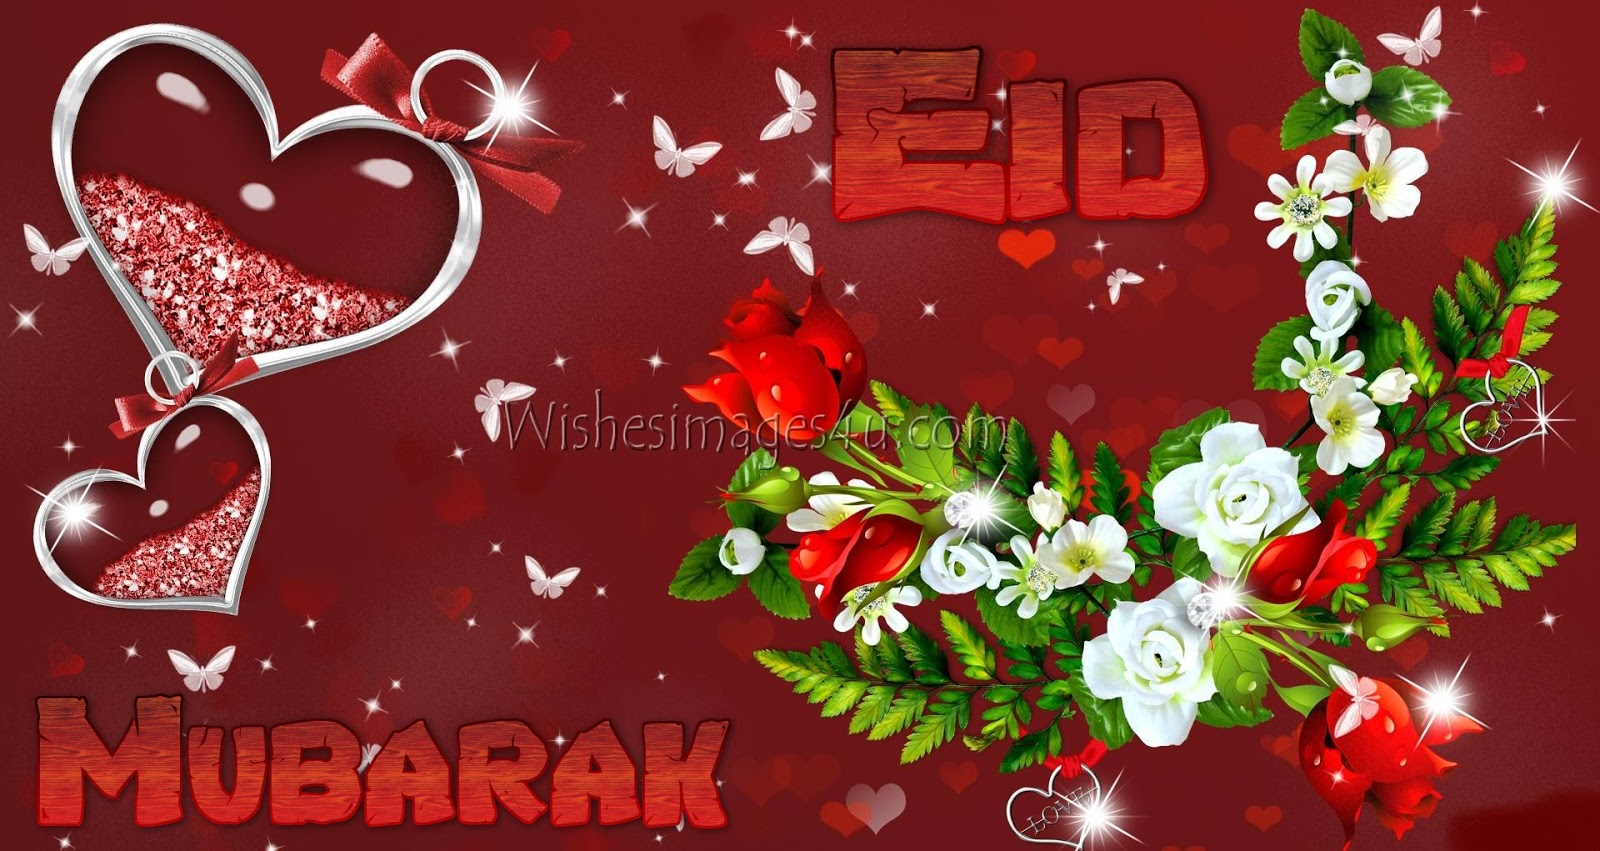 Wallpaper download in love - Related Search Eid Mubarak Love Wallpapers 2017